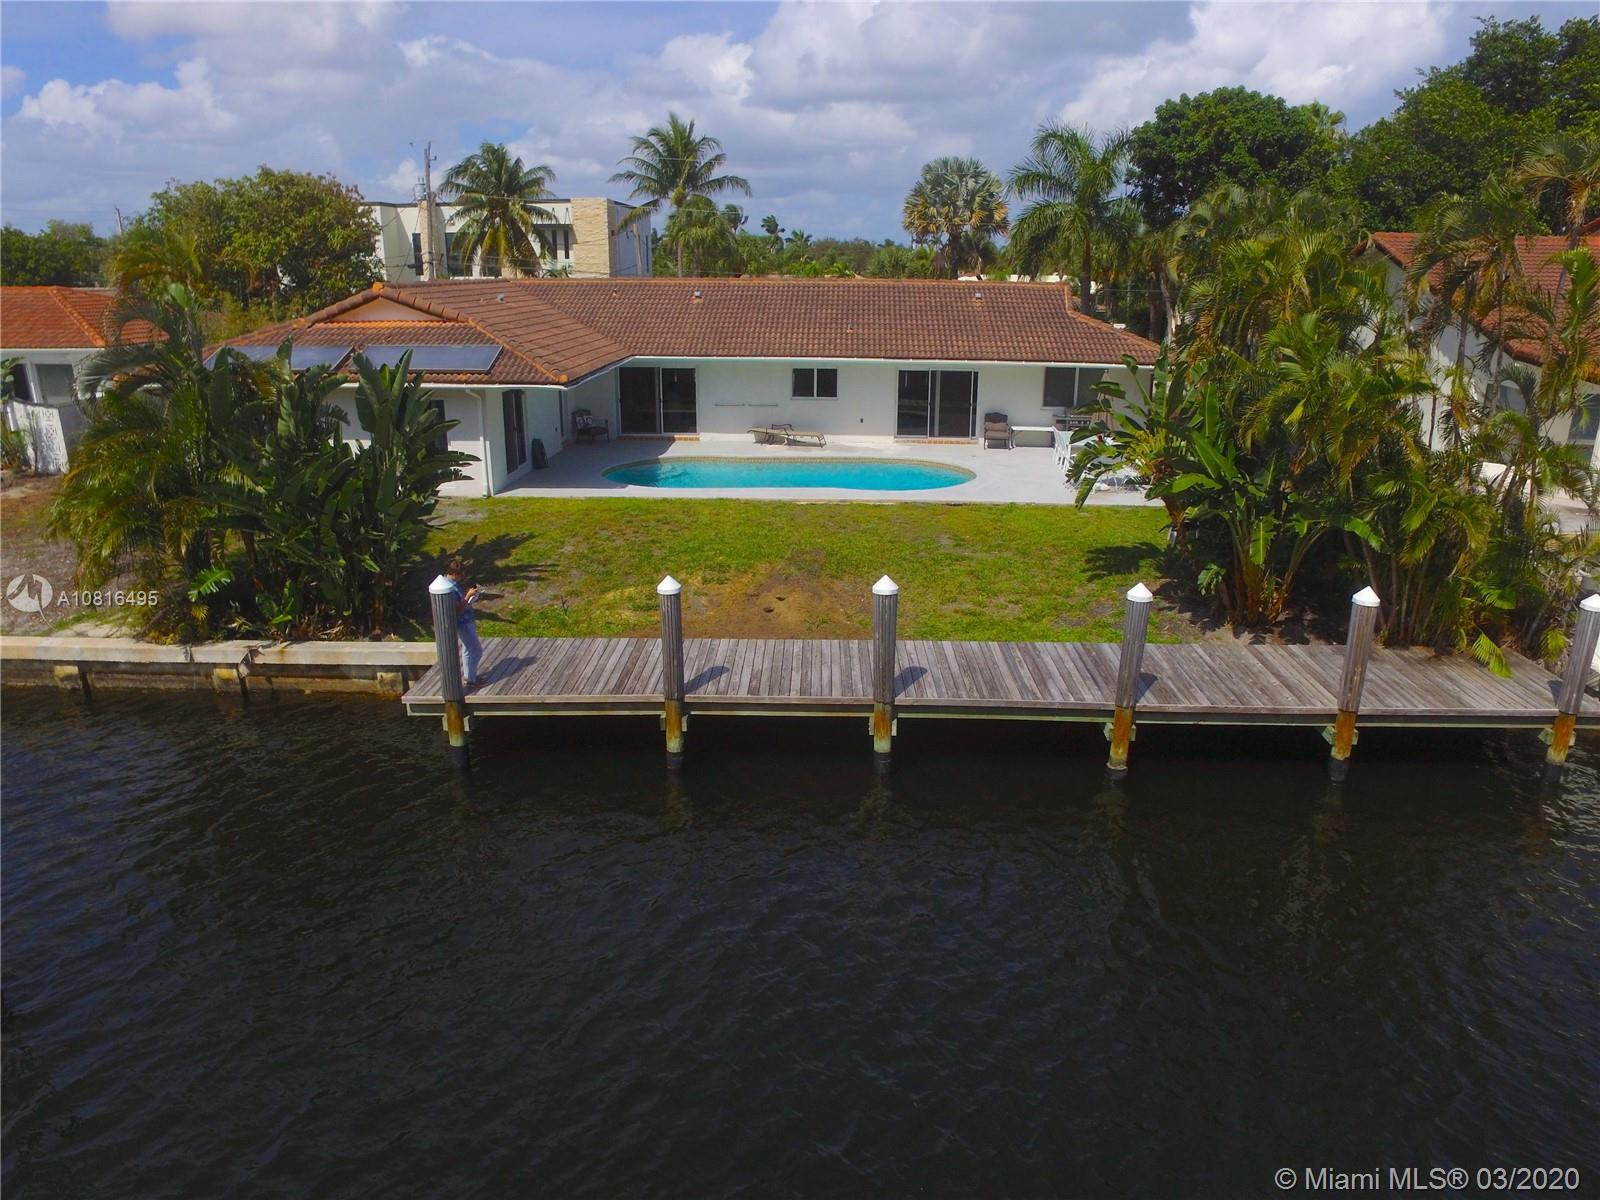 2824 NE 35th St, Fort Lauderdale, FL 33306 - Fort Lauderdale, FL real estate listing